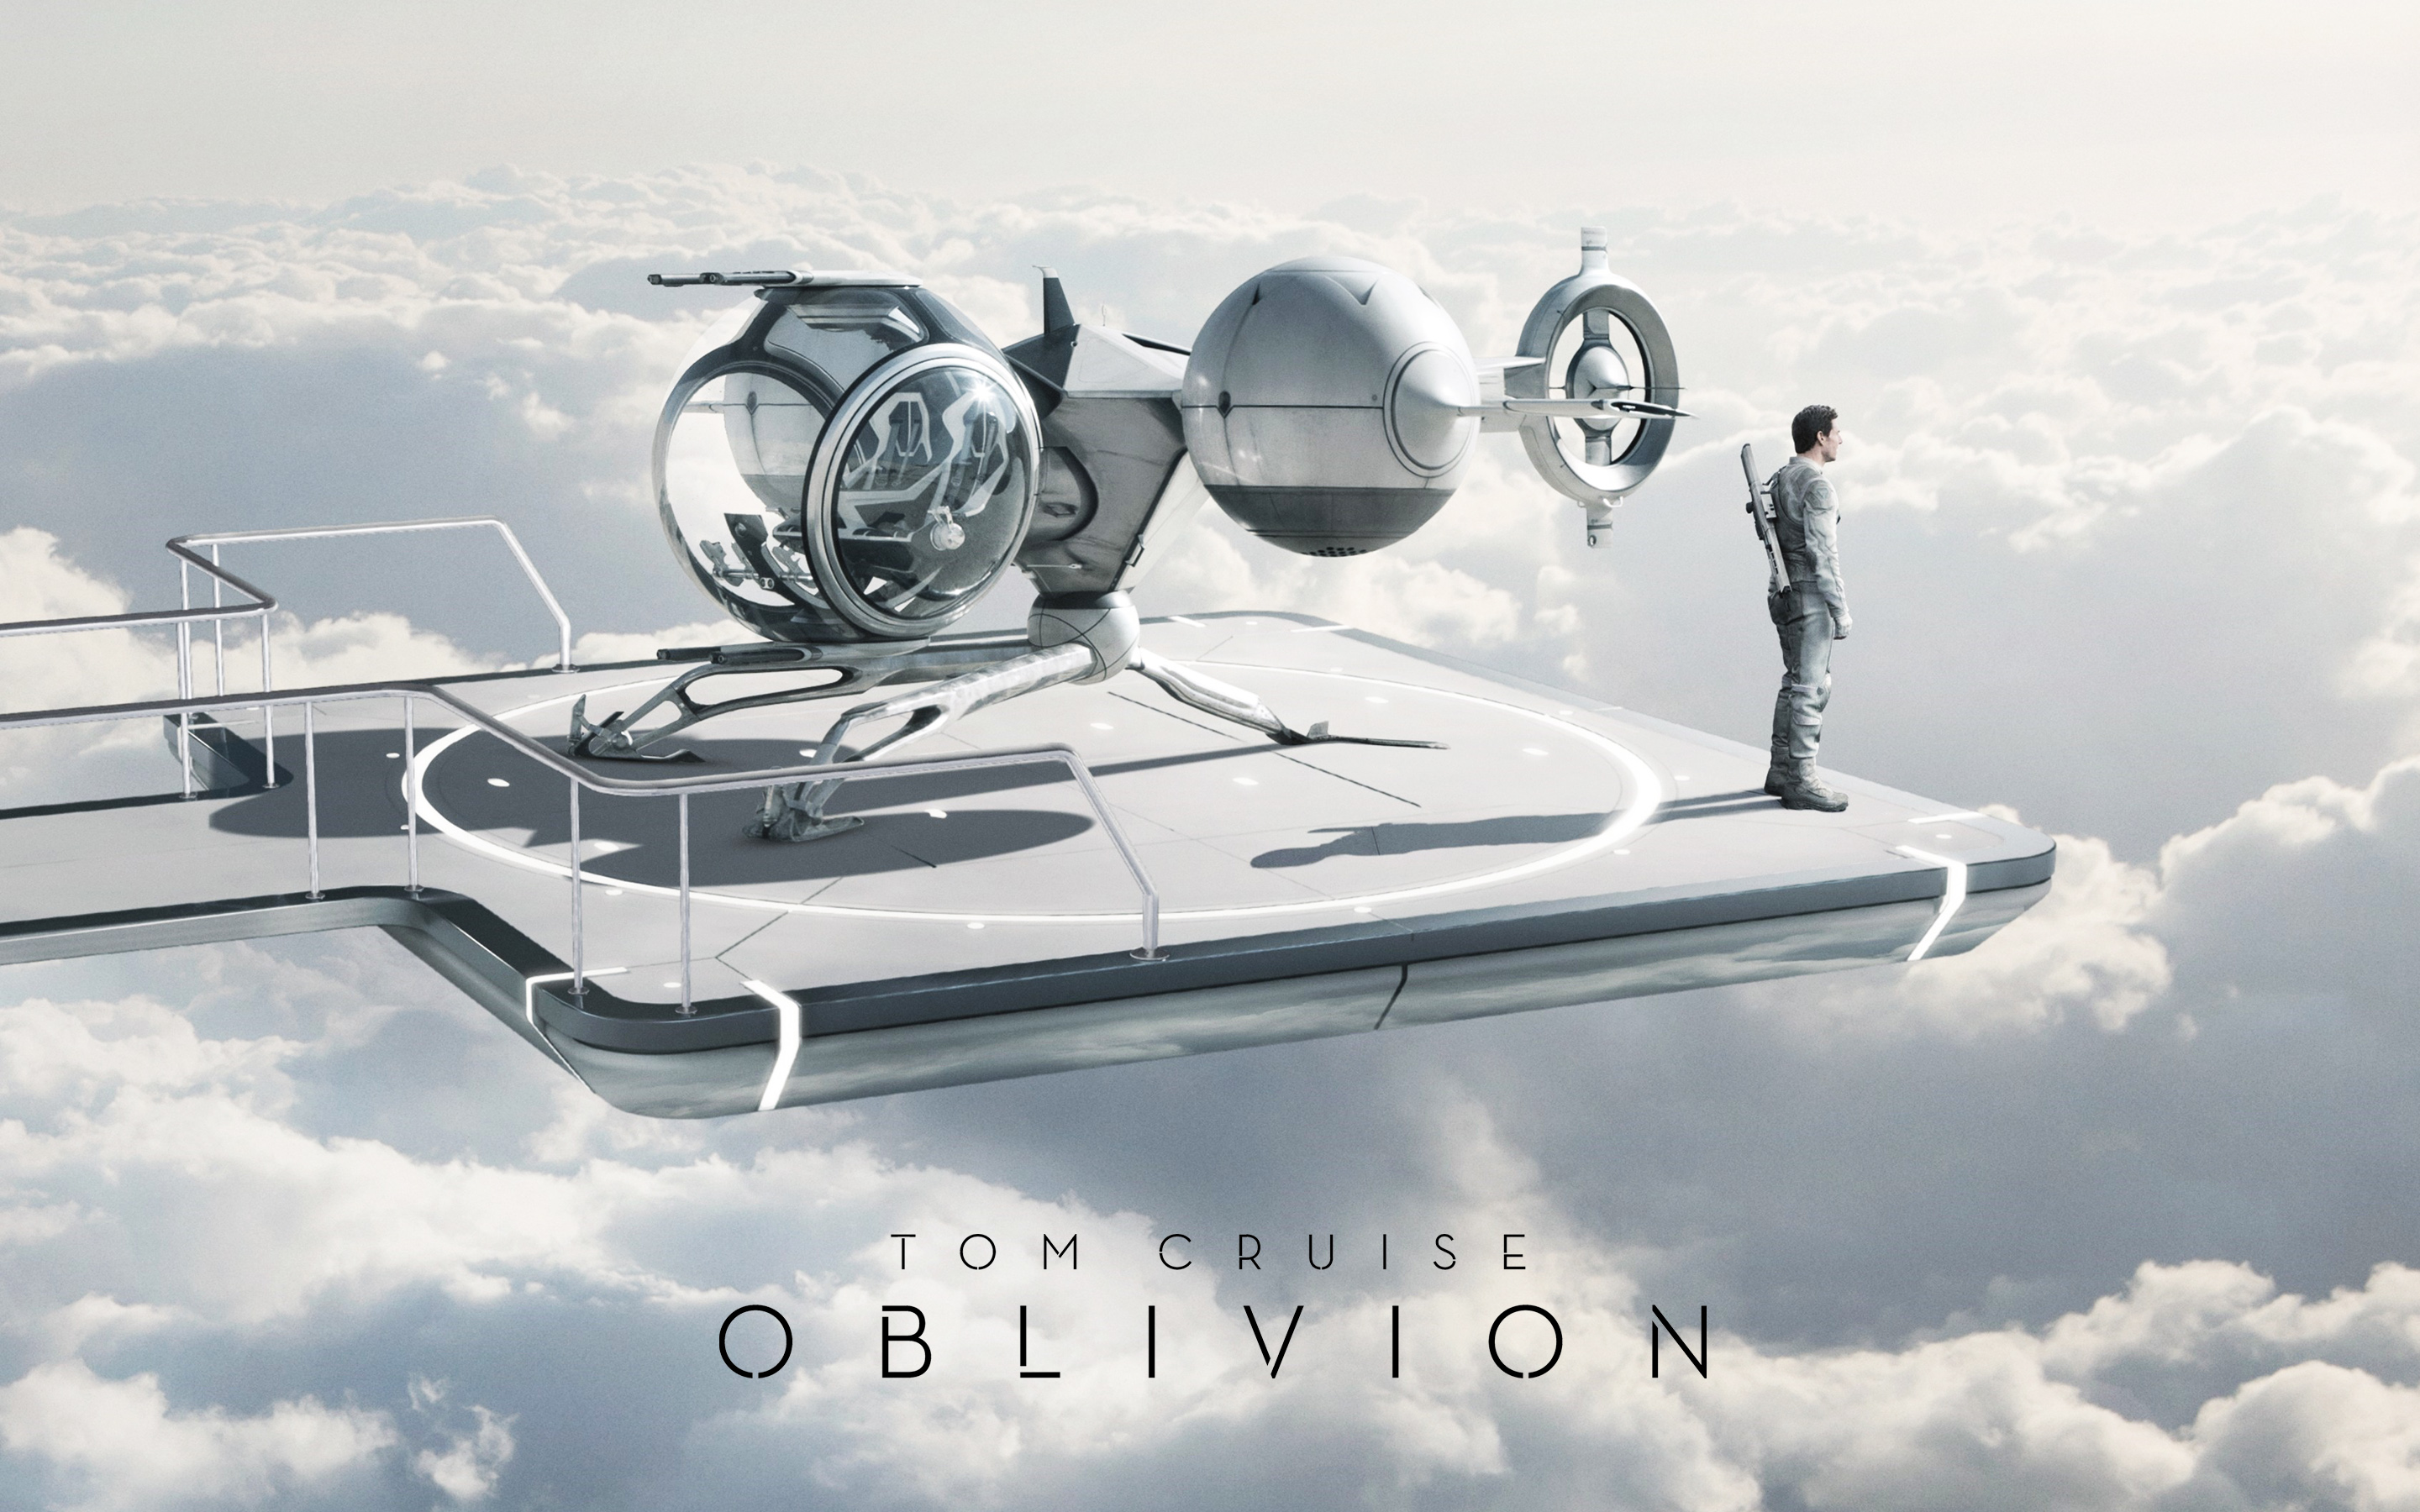 Tom Cruise Oblivion Movie